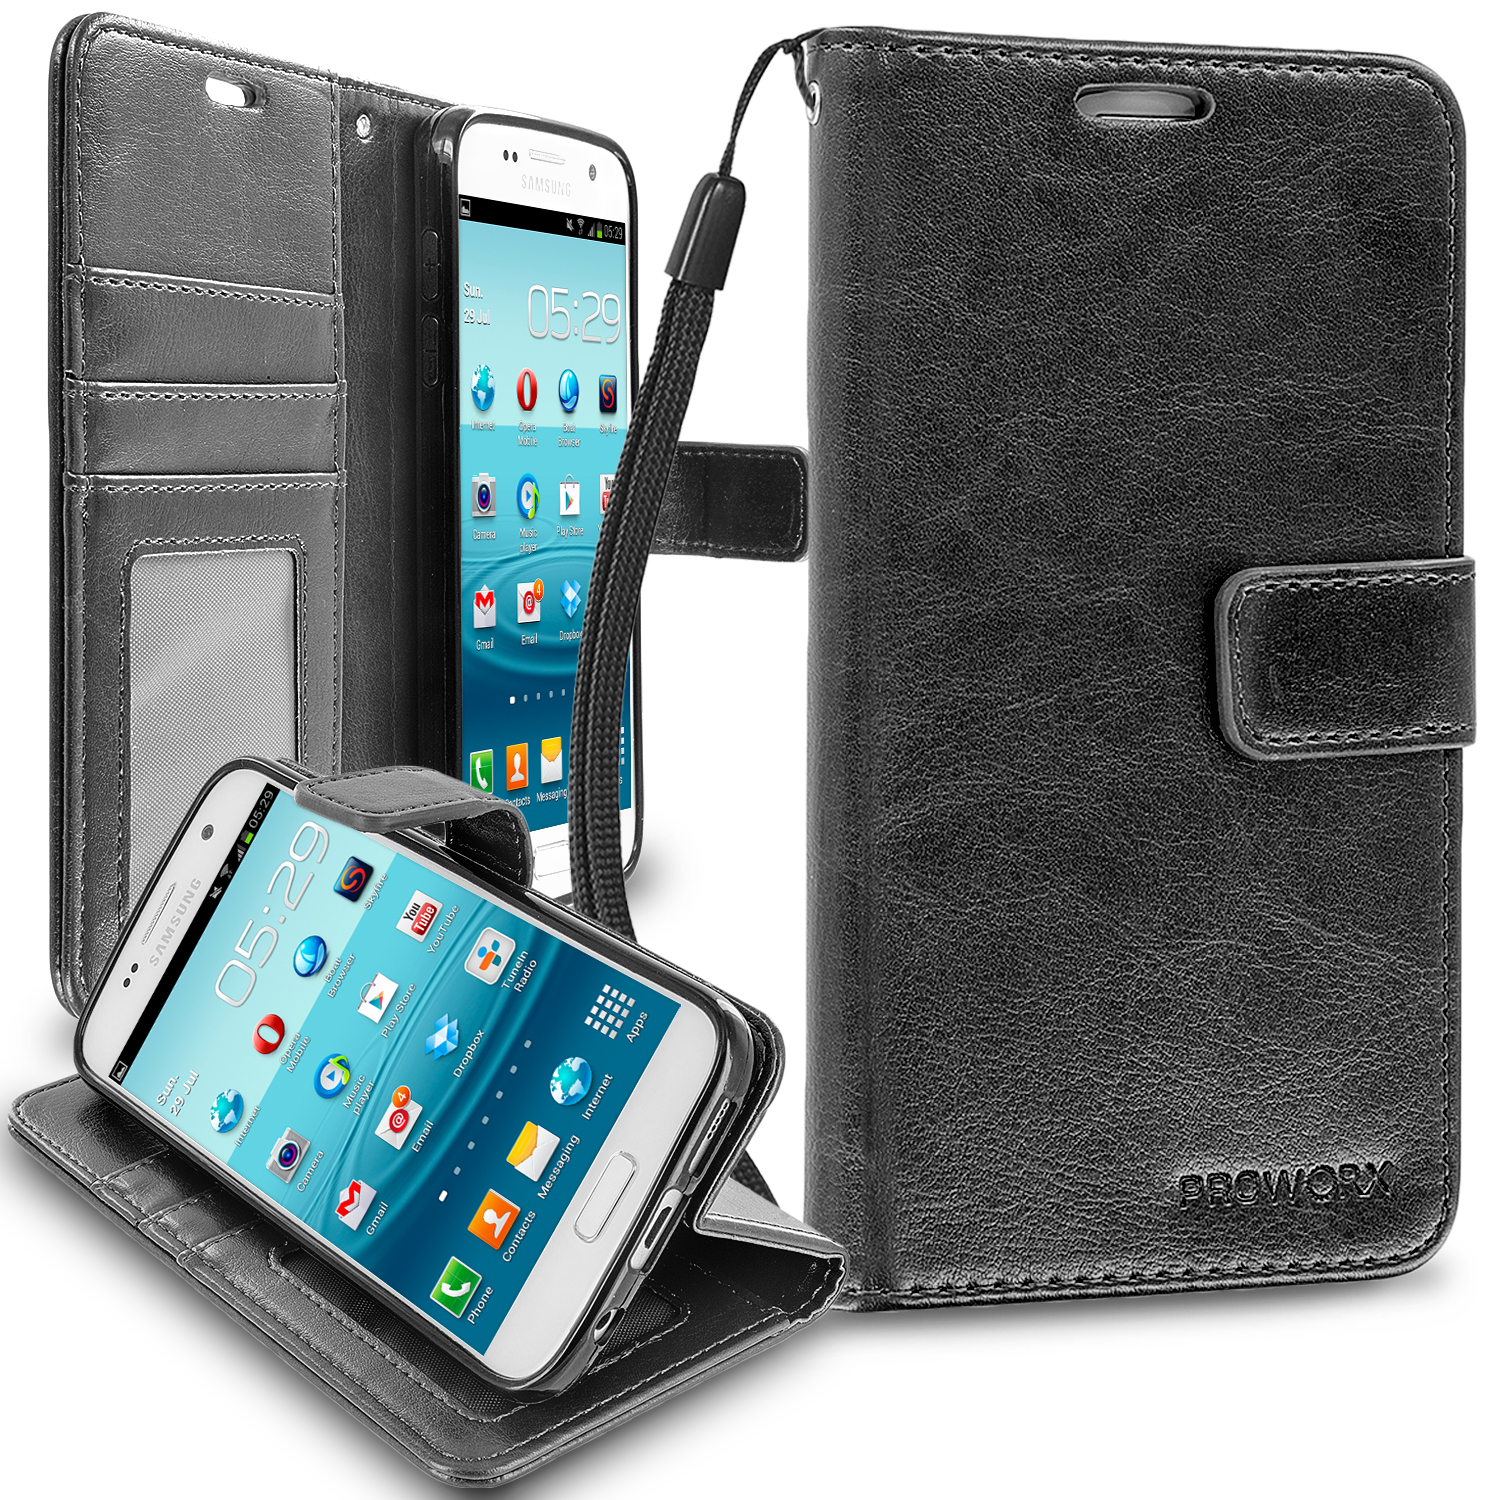 Samsung Galaxy S7 Black ProWorx Wallet Case Luxury PU Leather Case Cover With Card Slots & Stand